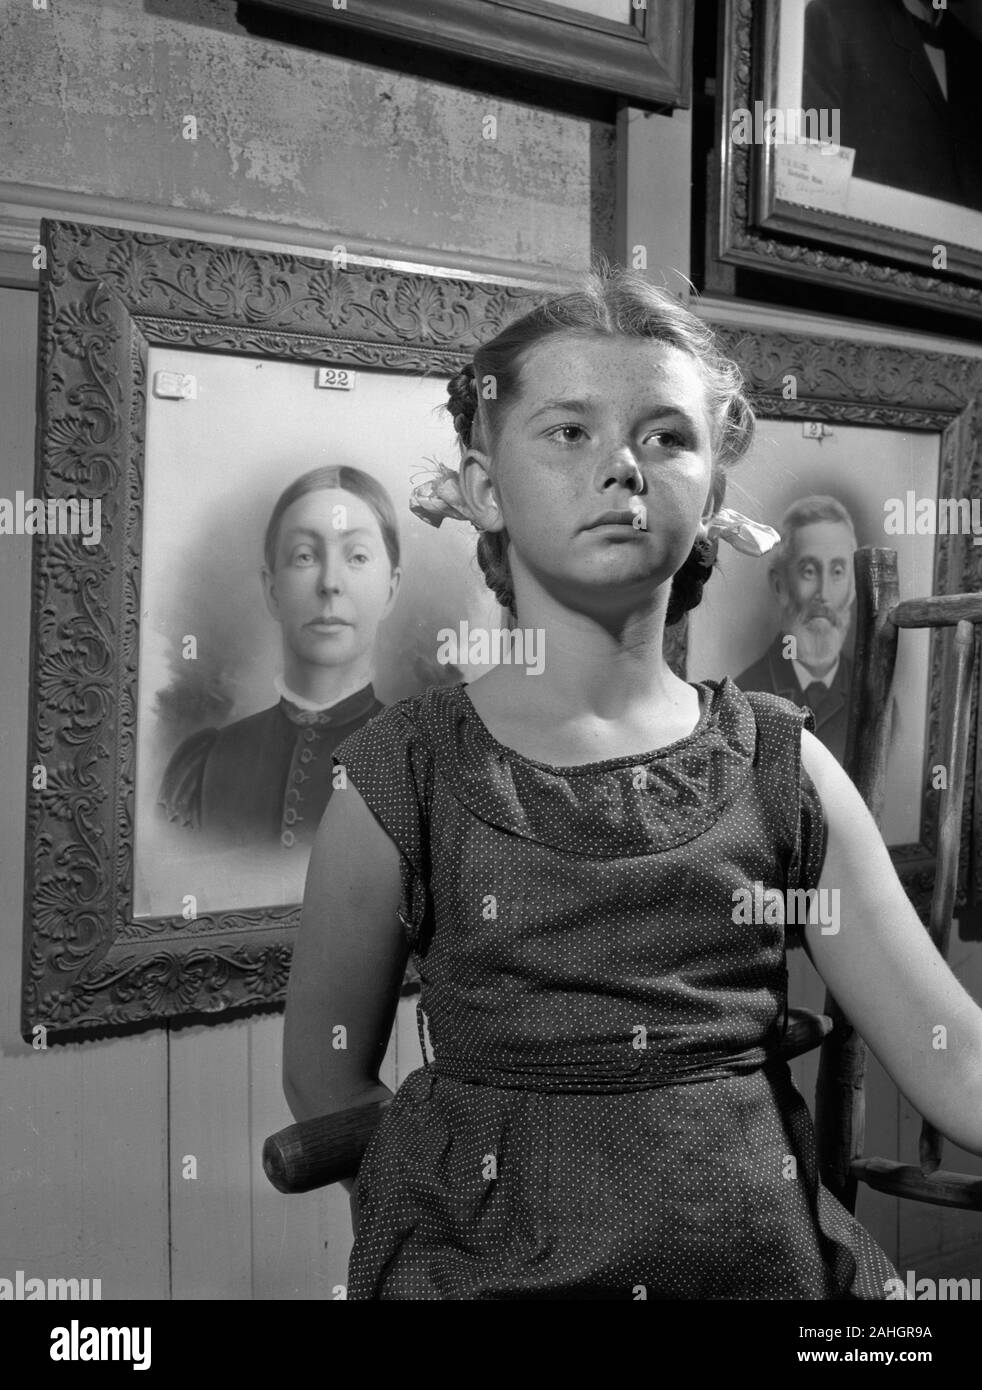 Girl standing in front of portraits of family members, 1946. This was part of the Minnesota State Fair in 1946, where people stood in front of portraits of their grandparents to illustrate genealogical traits. Stock Photo